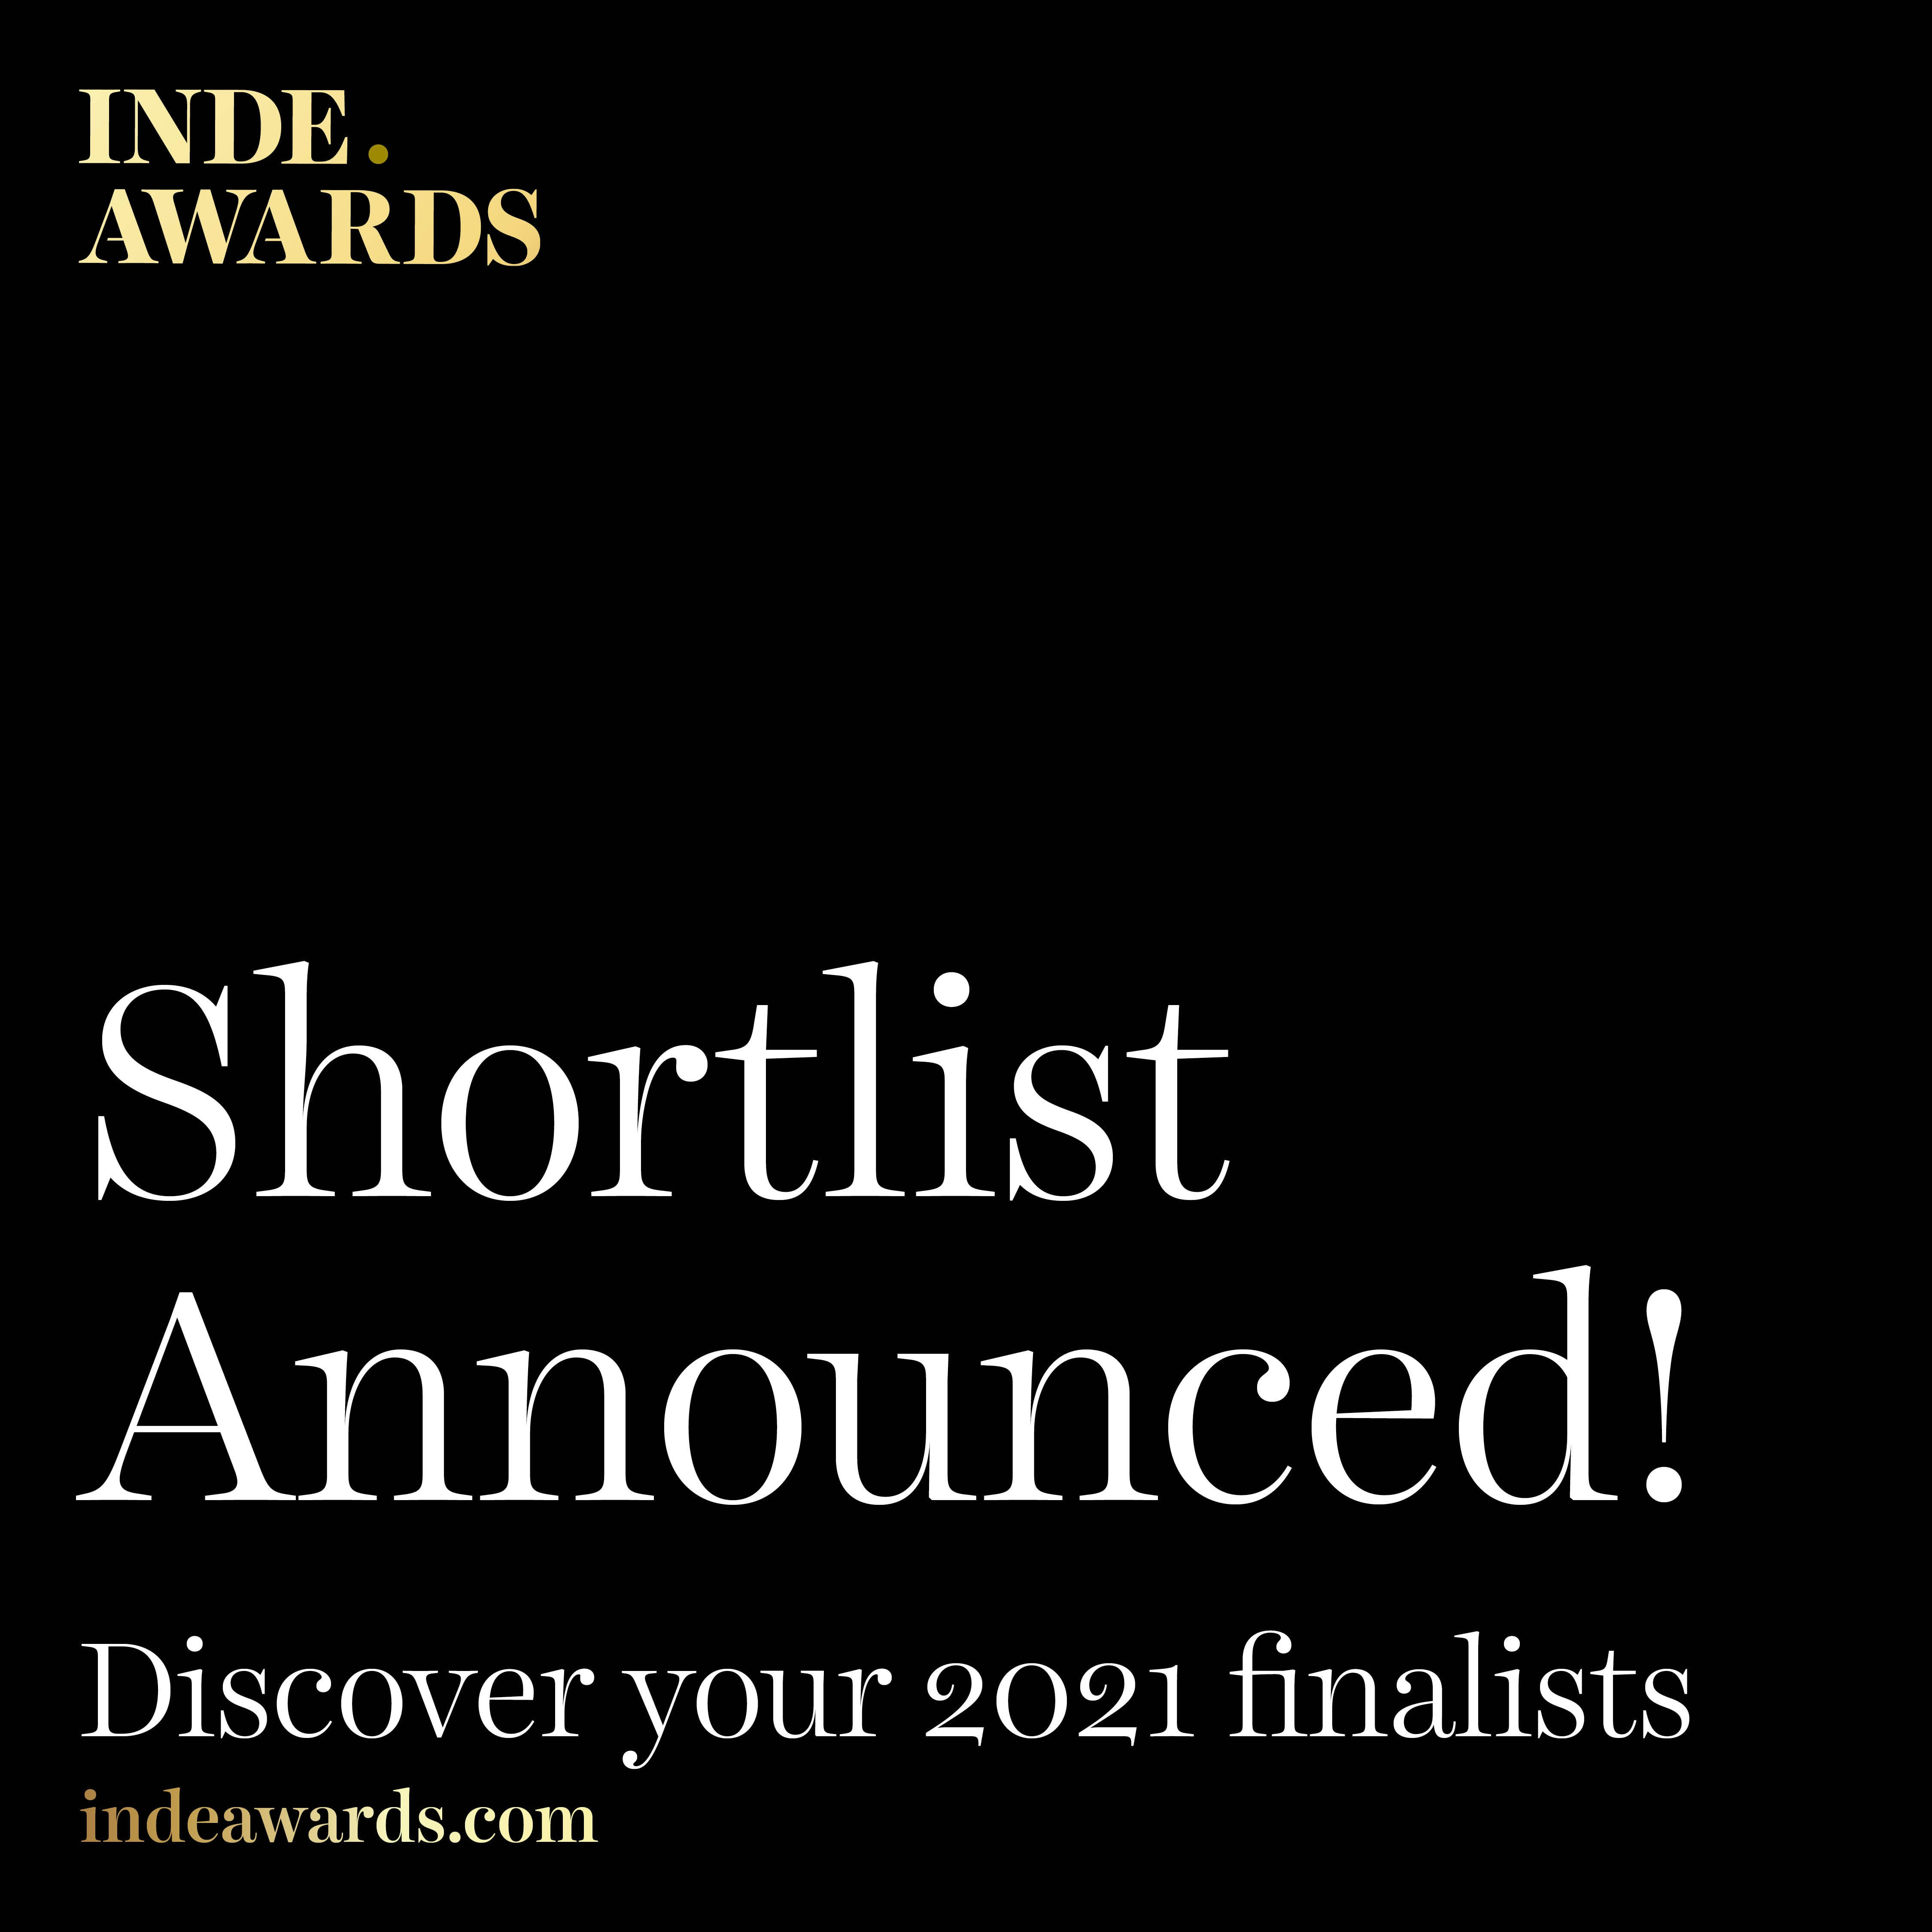 Breathe shortlisted at this year's INDE.Awards